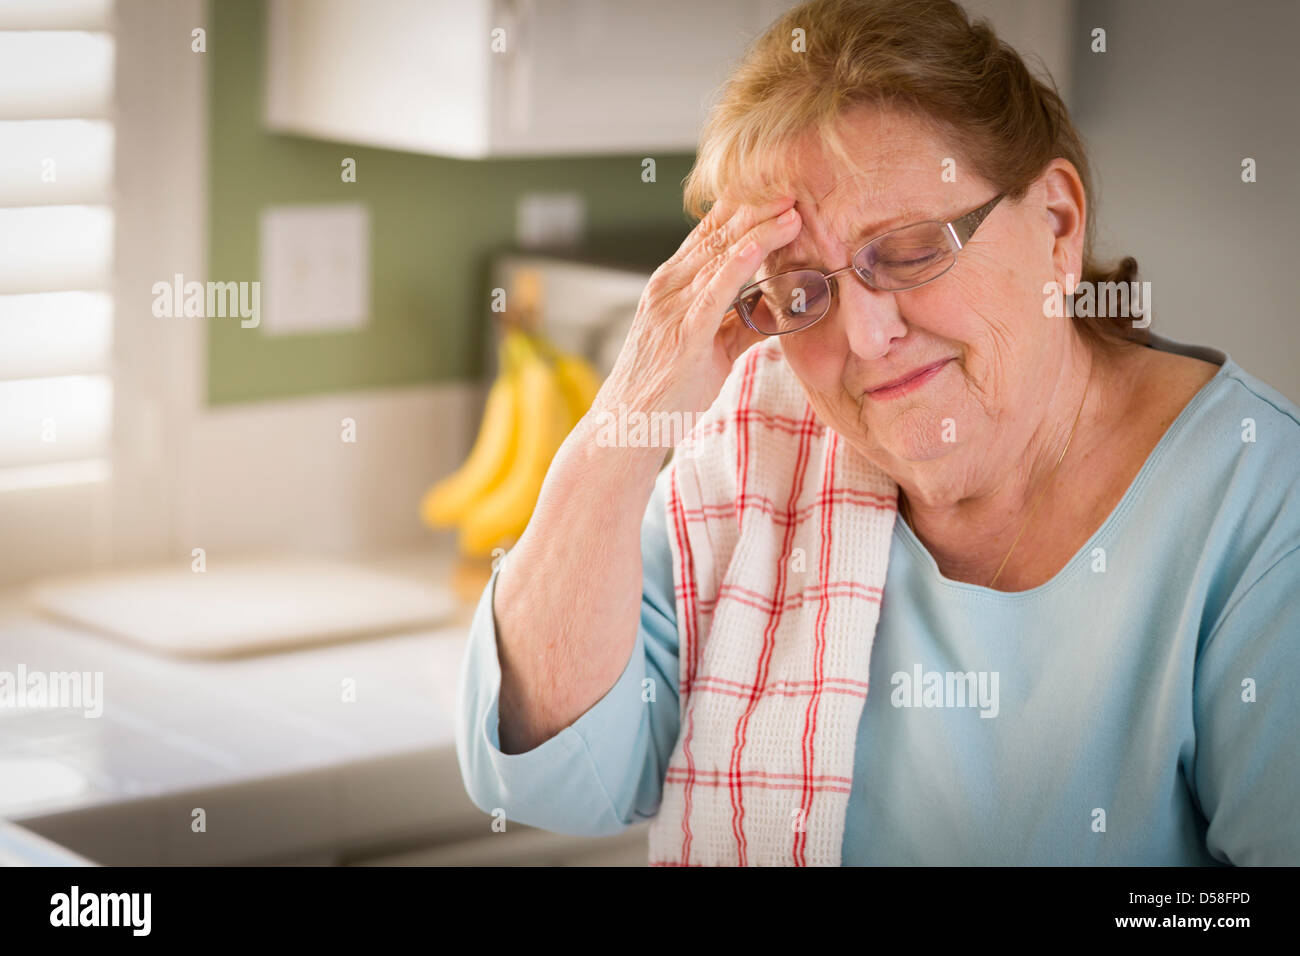 Sad Crying Senior Adult Woman At Kitchen Sink in Home. - Stock Image